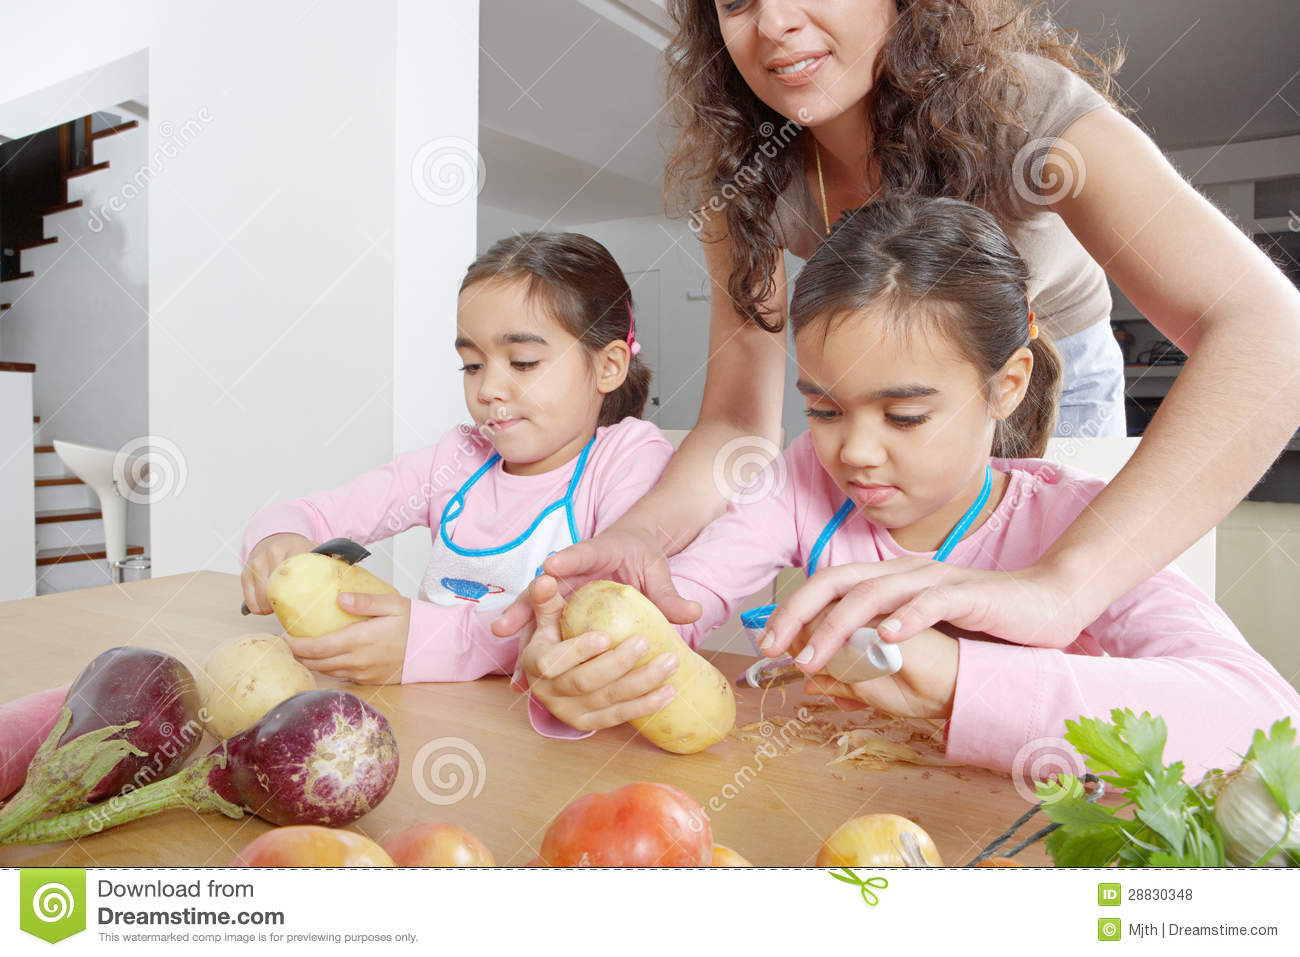 Mother And Twins Peeling Potatoes In Kitchen Royalty Free Stock Photos Image 28830348